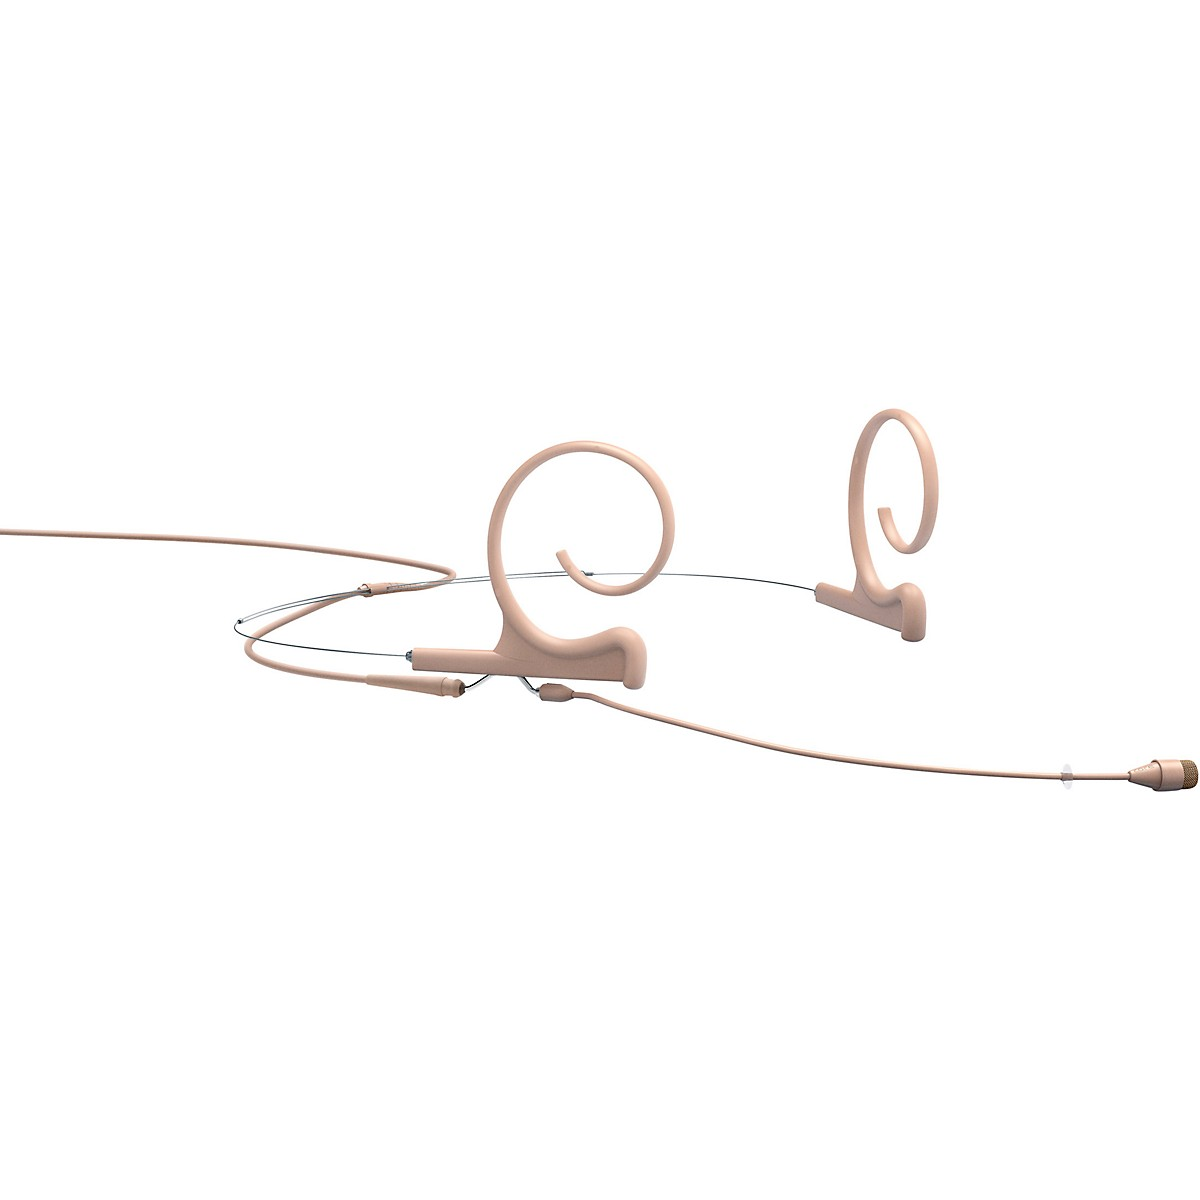 DPA Microphones d:fine CORE 4066 Omni  Headset Mic, Beige, with MicroDot Connector